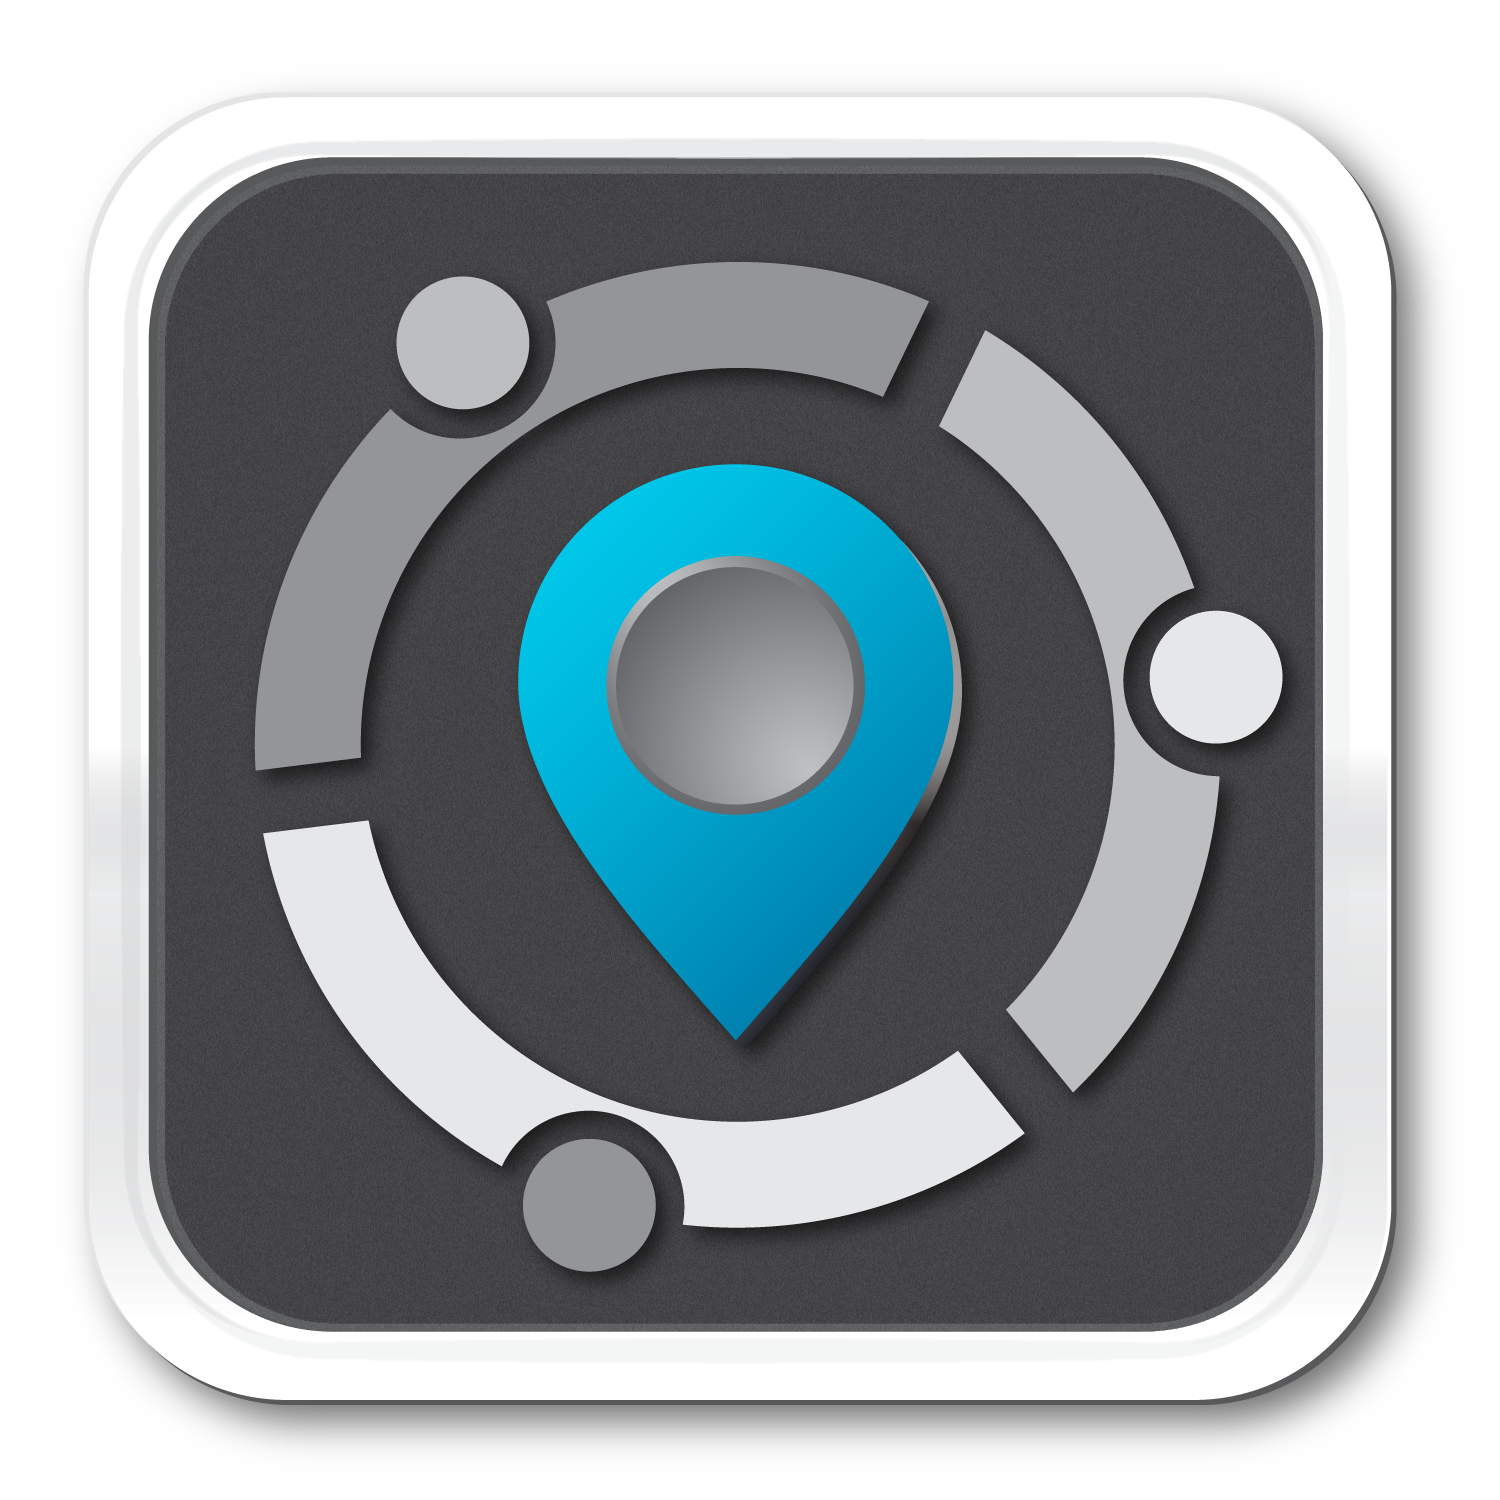 Passive-GPS-icons-04.png